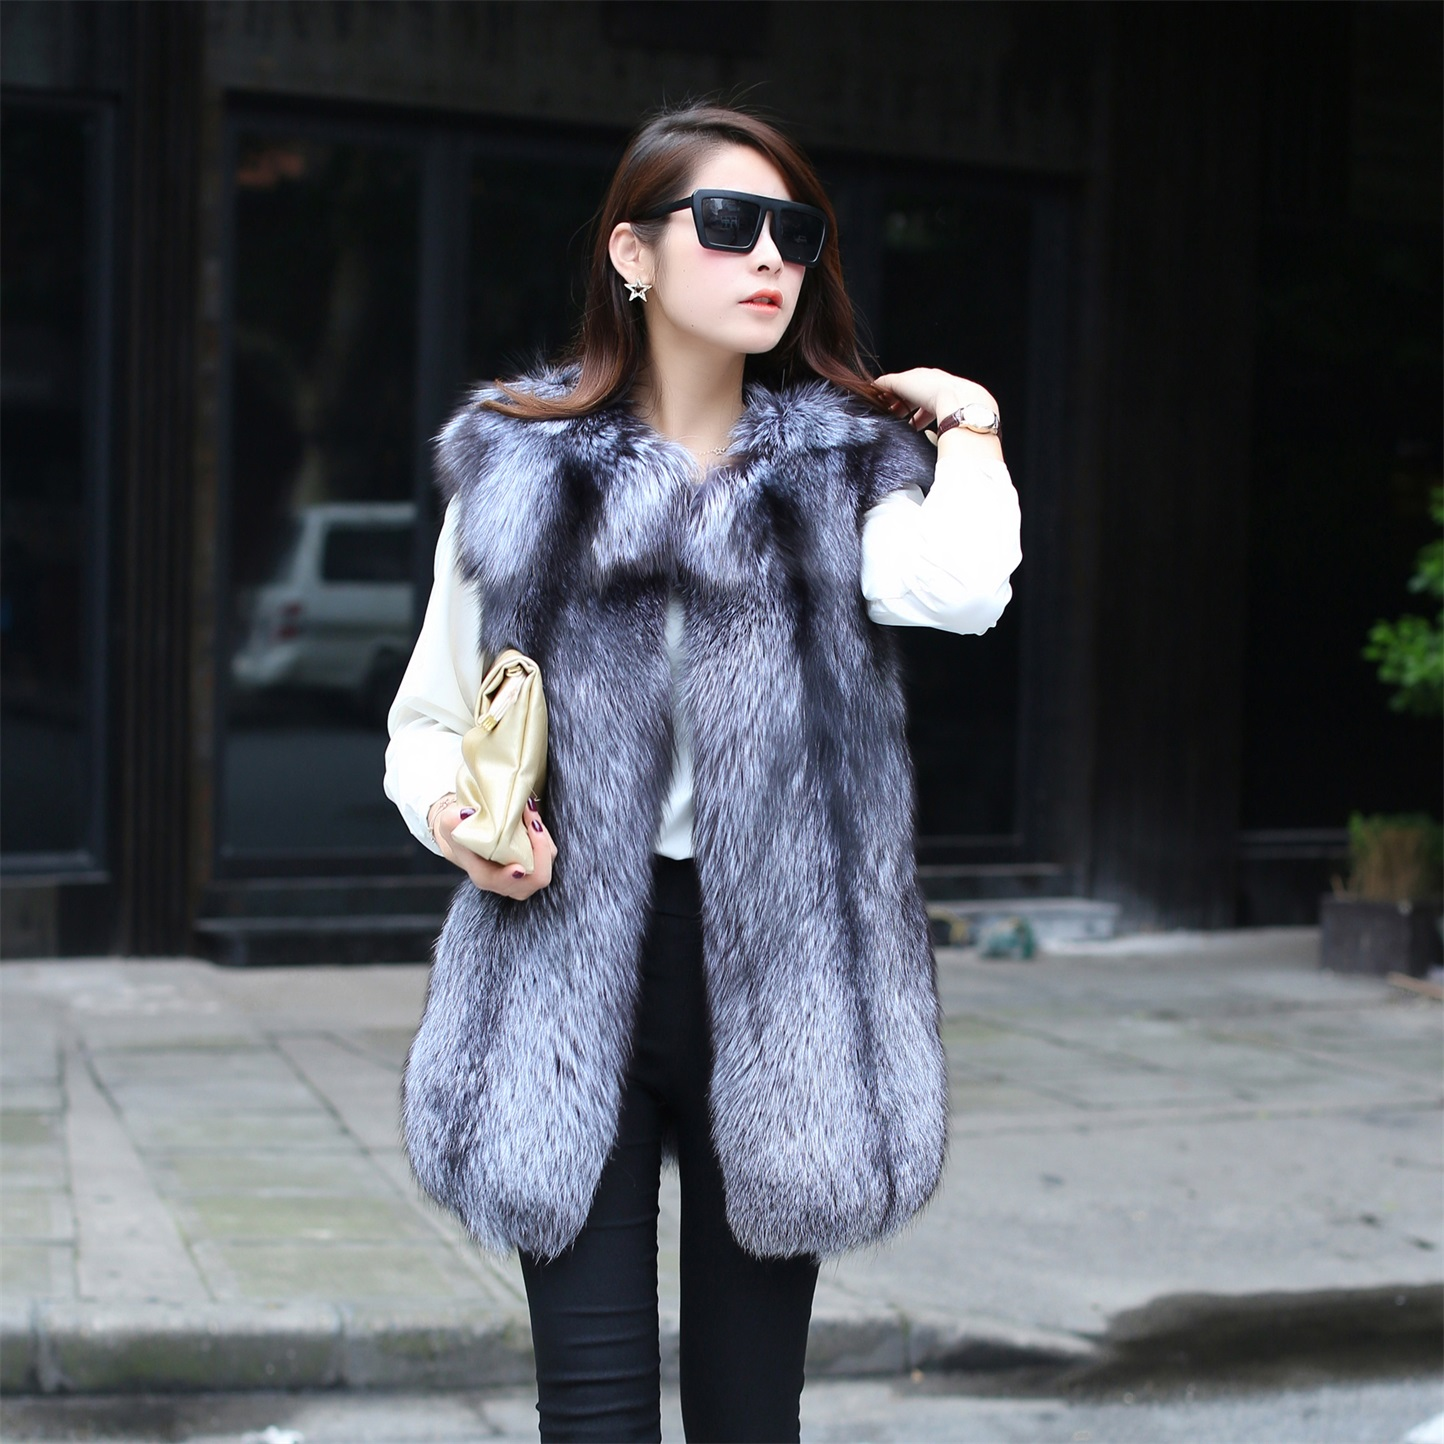 The new 2014 lady fur coat imported Silver Blue Fox Fur Vest fur high-end customized specialОдежда и ак�е��уары<br><br><br>Aliexpress